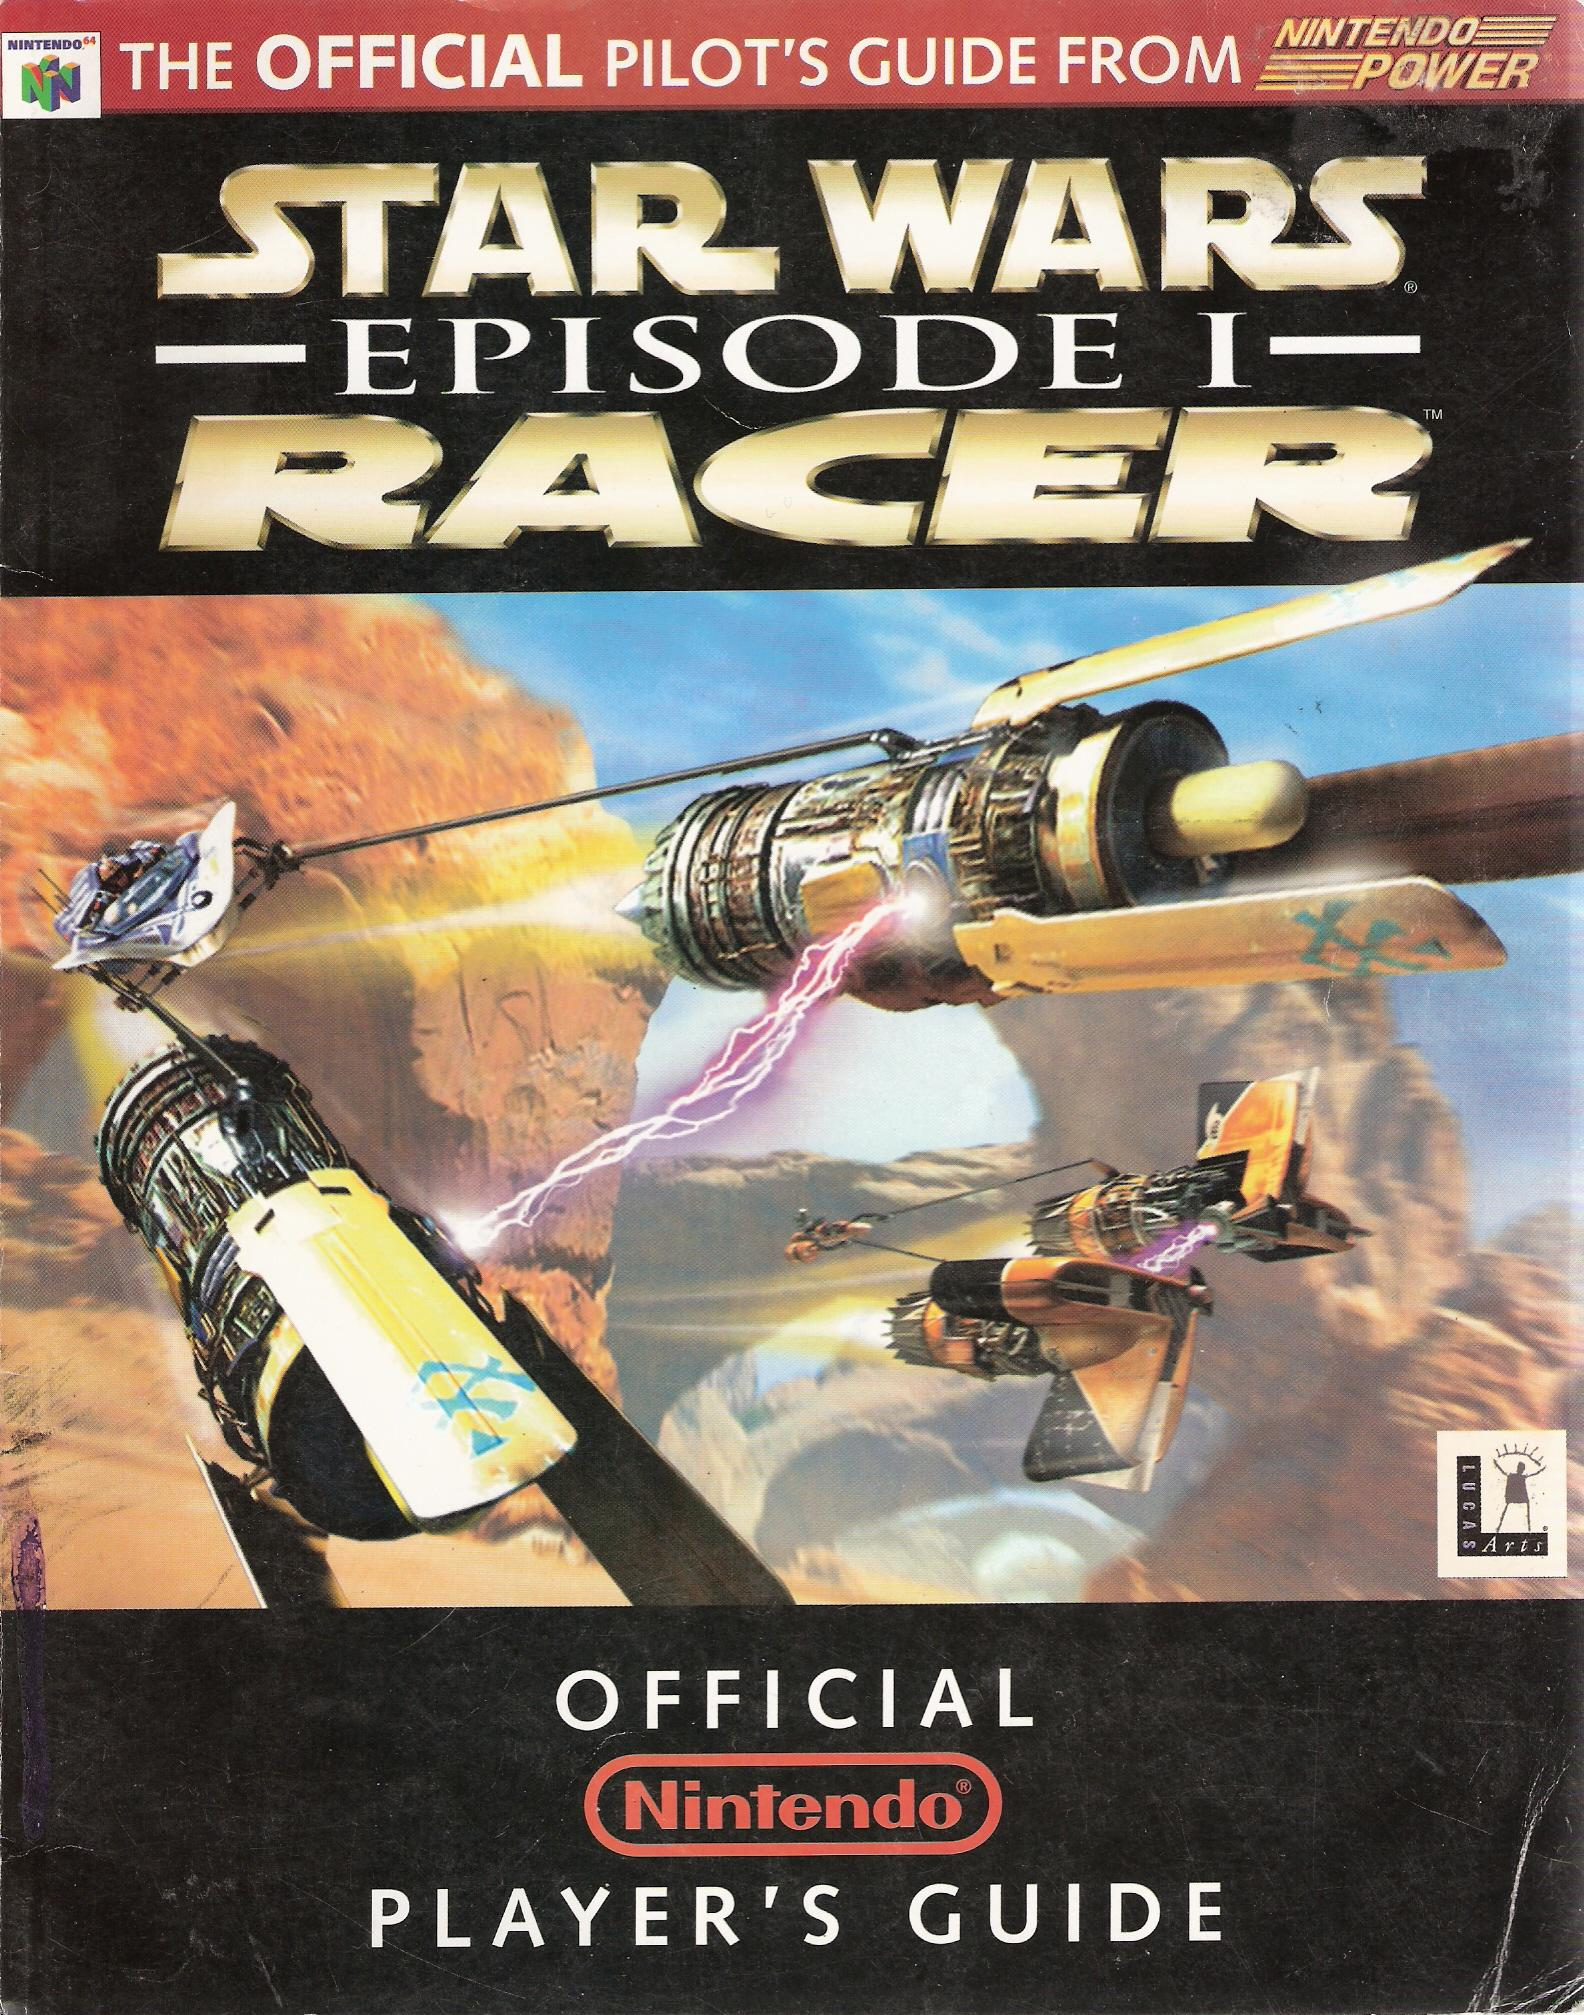 Star Wars: Episode I: Racer: The Official Nintendo Player's Guide